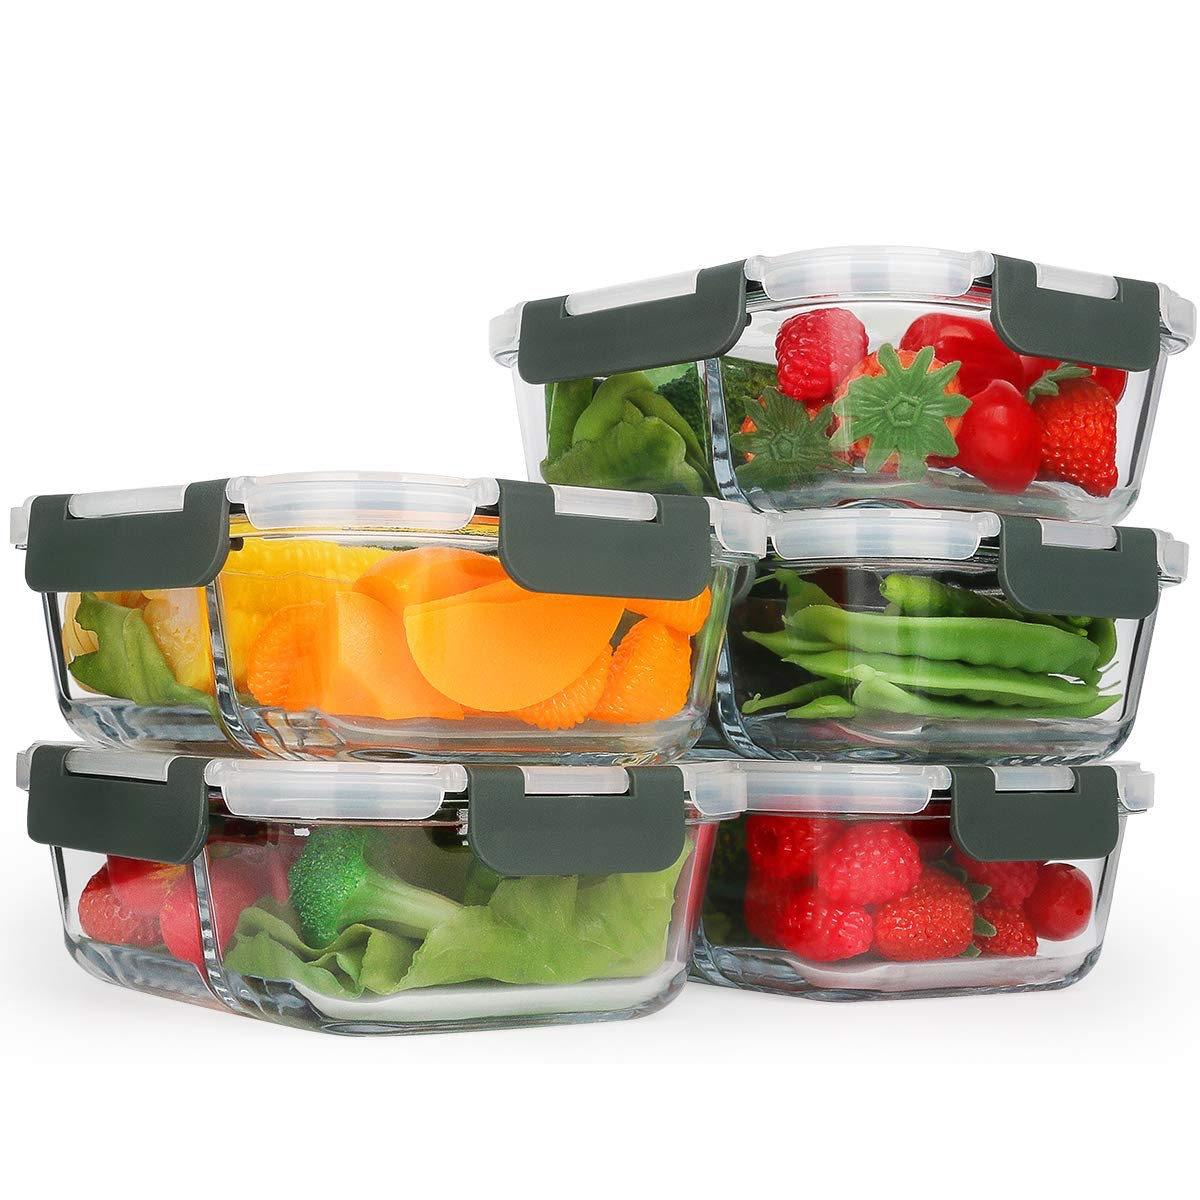 glass containers full of fruit and vegetables, cheap meal prep containers